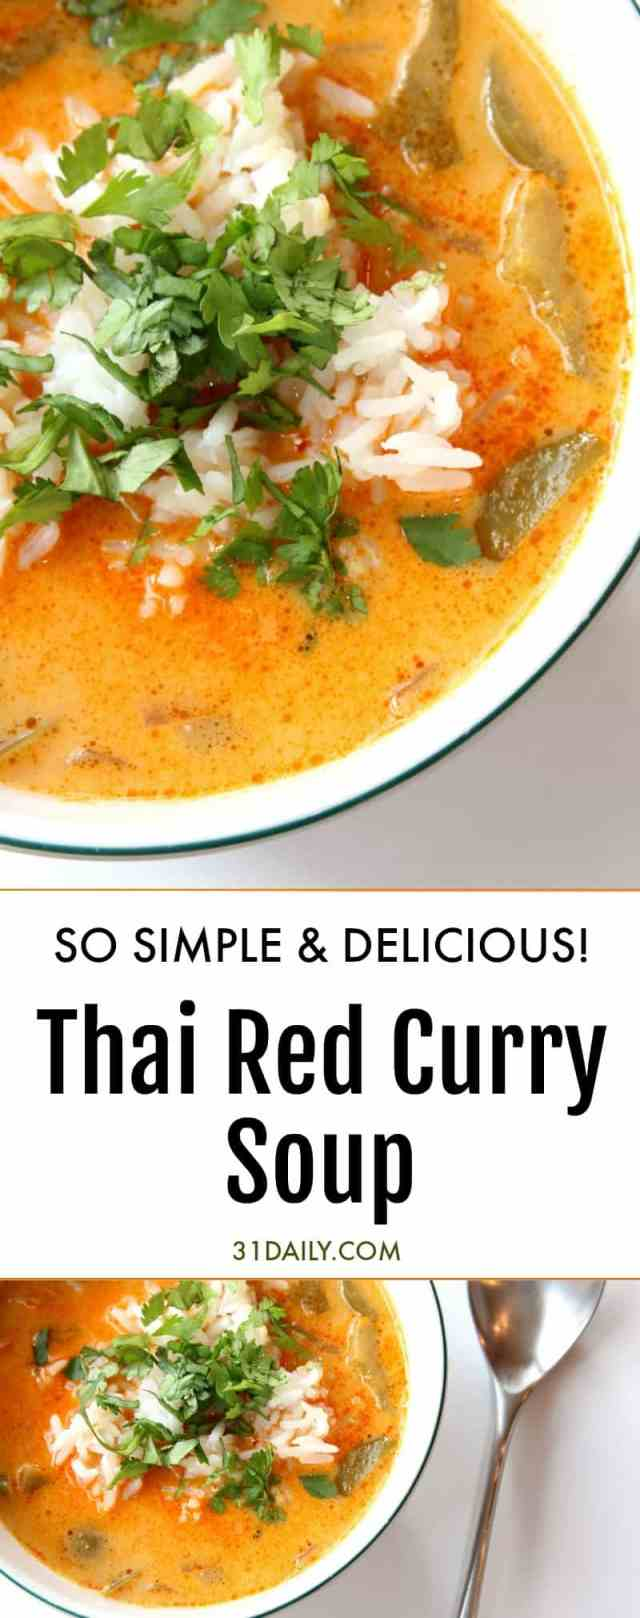 A Simple, Soul Satisfying Thai Red Curry Soup | 31Daily.com